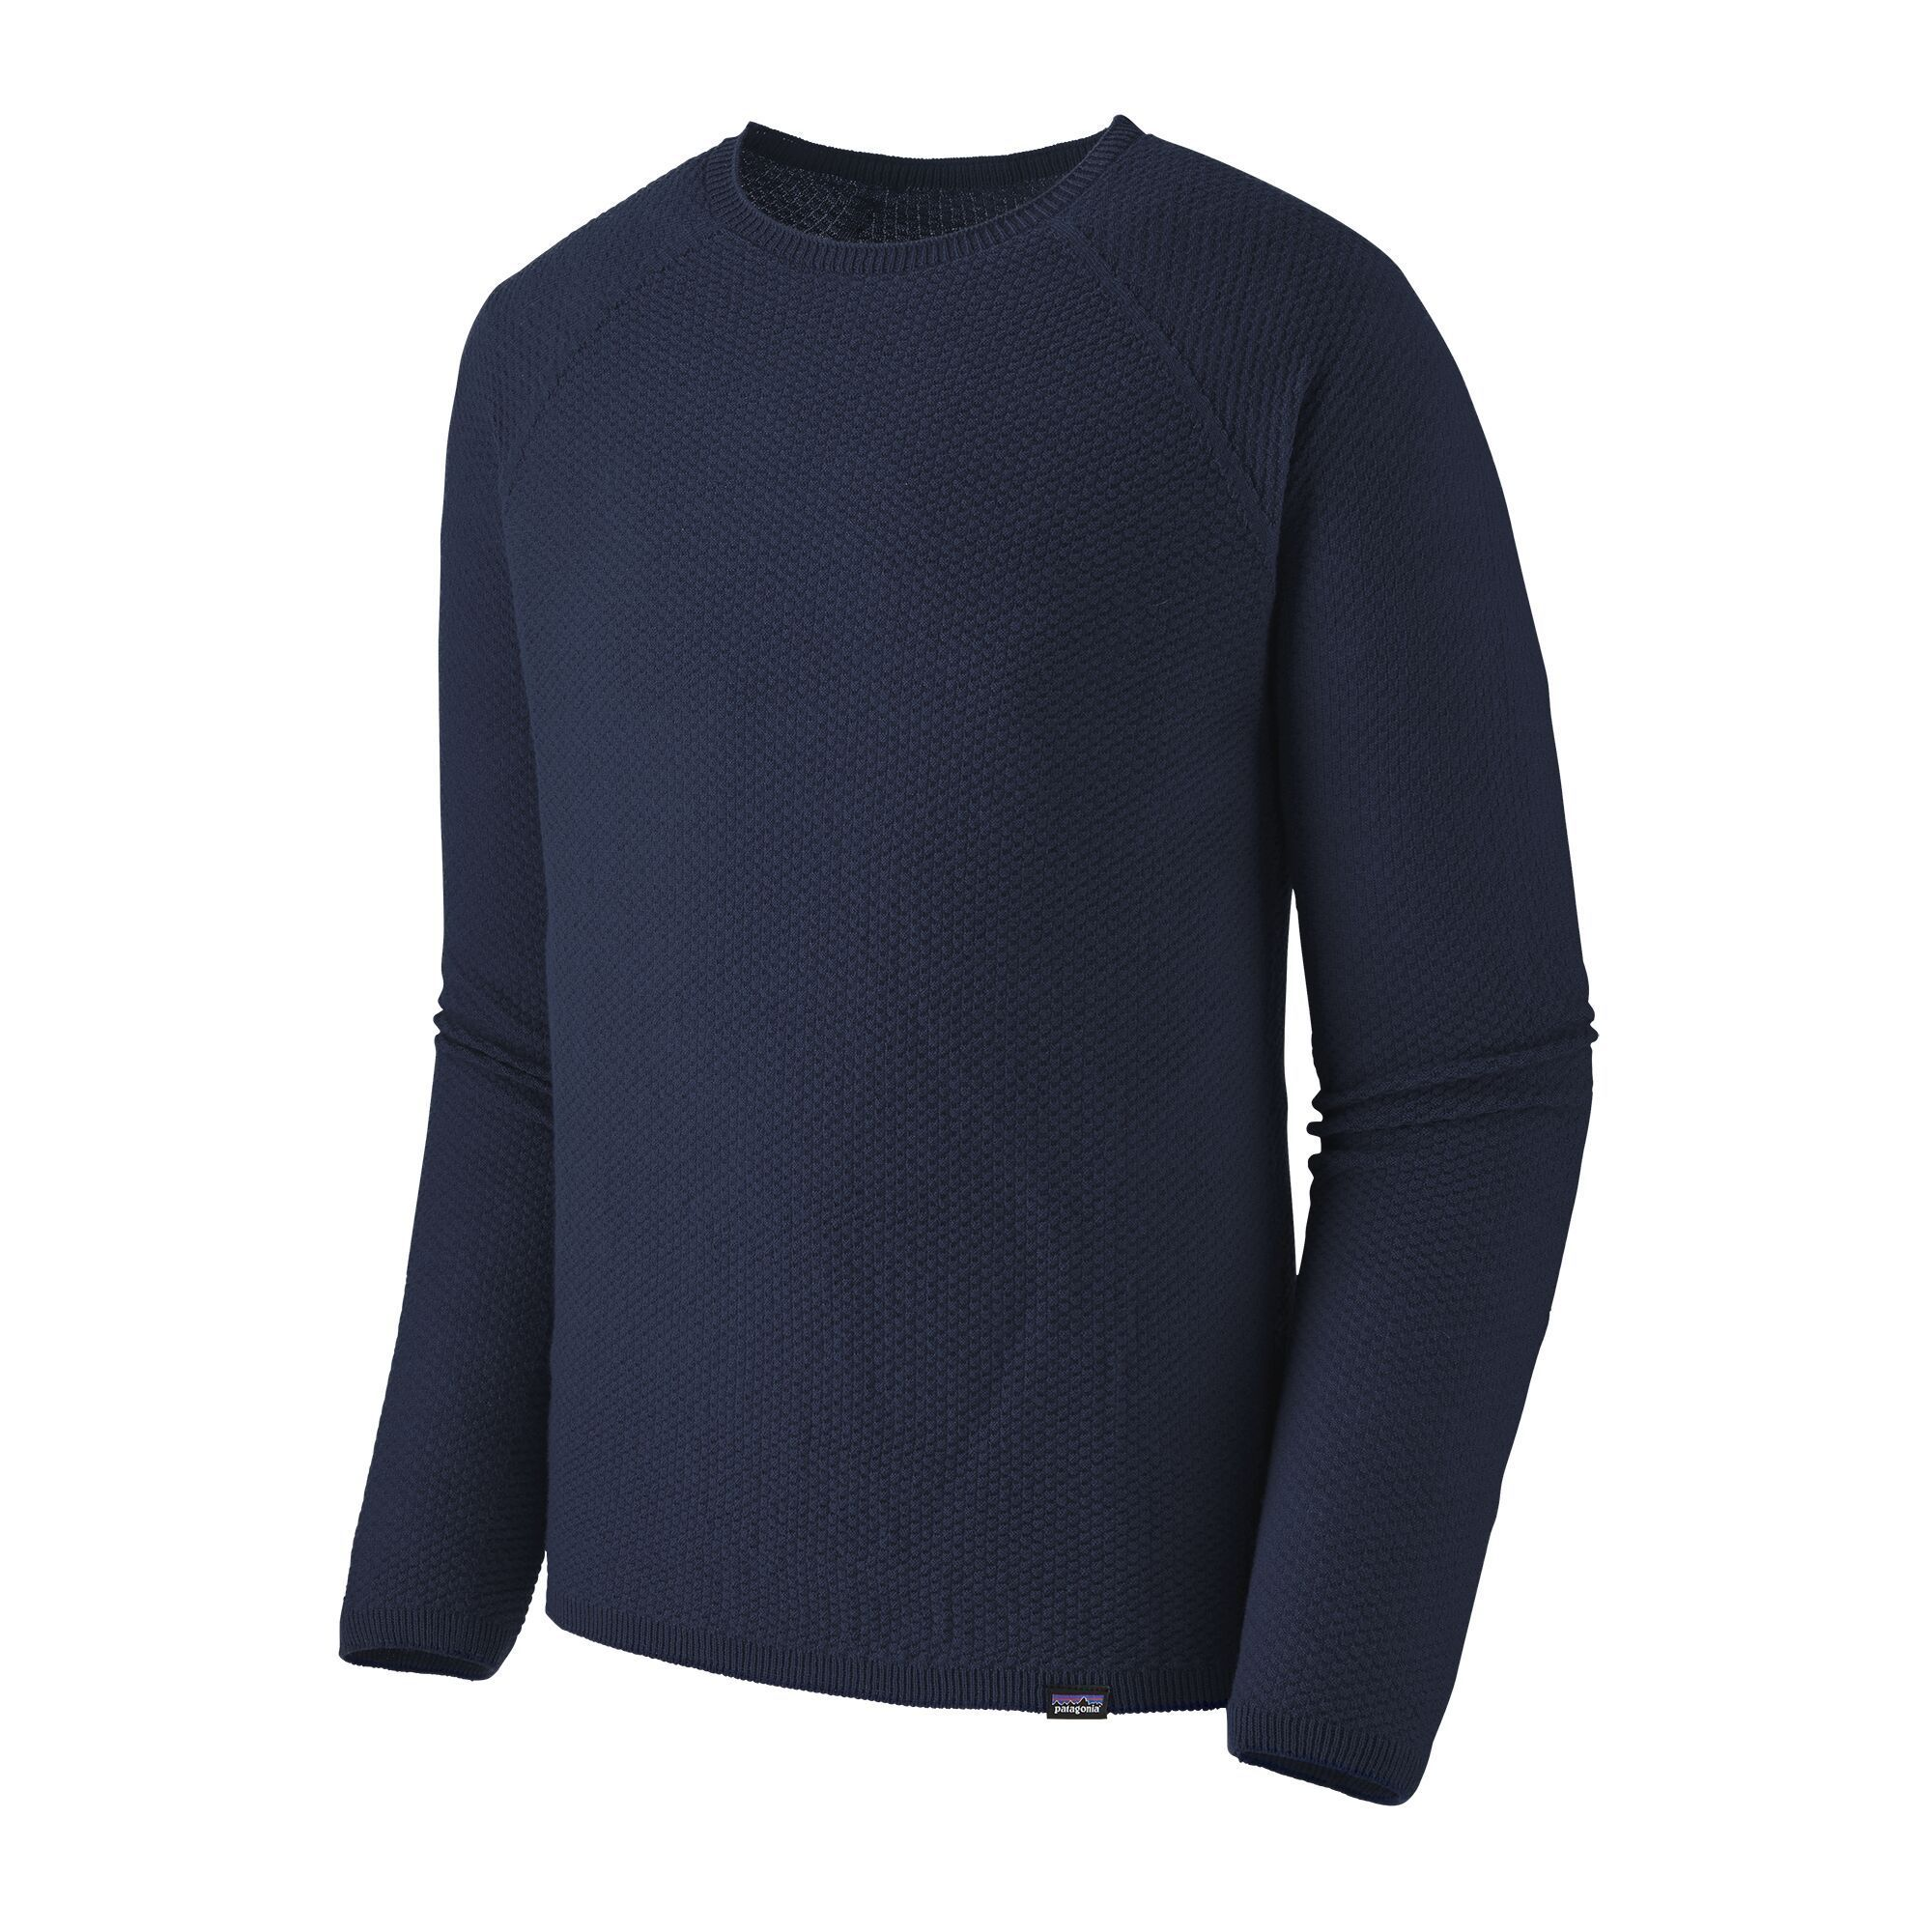 Patagonia - M's Capilene® Air Crew Shirt - Merino Wool & Recycled Polyester - Weekendbee - sustainable sportswear